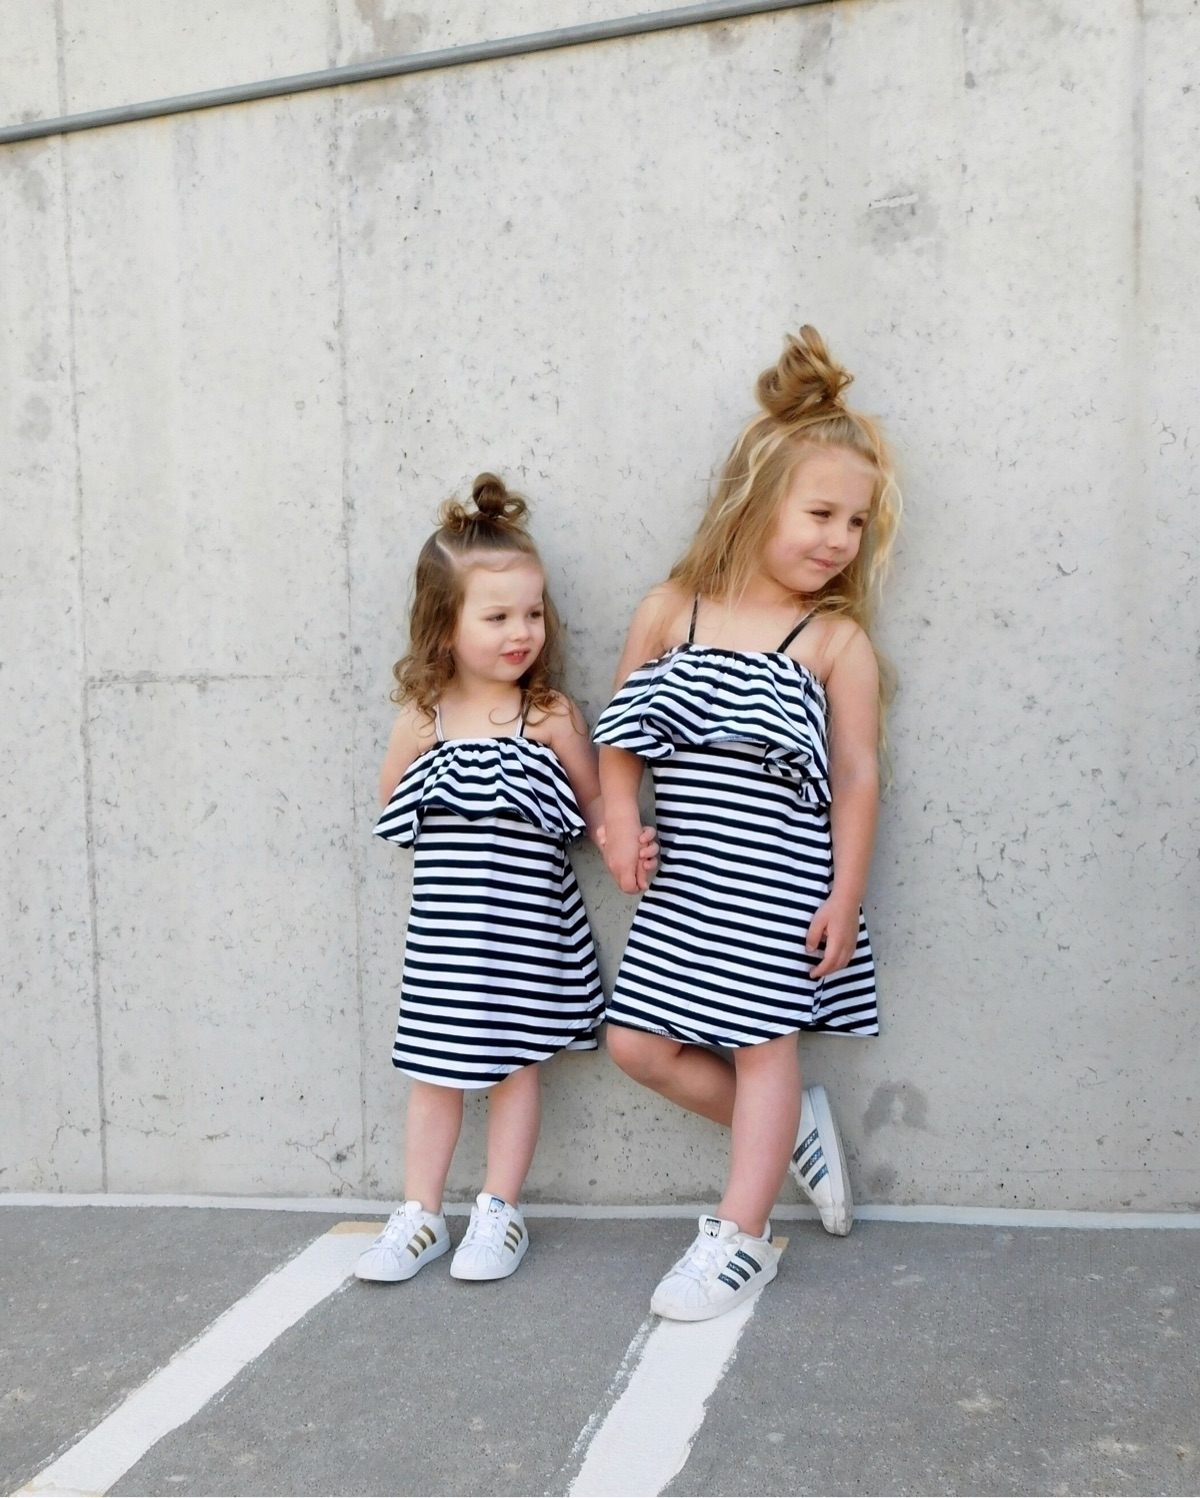 Amazing dresses  - kidsclothes, fashion - harpiebear | ello